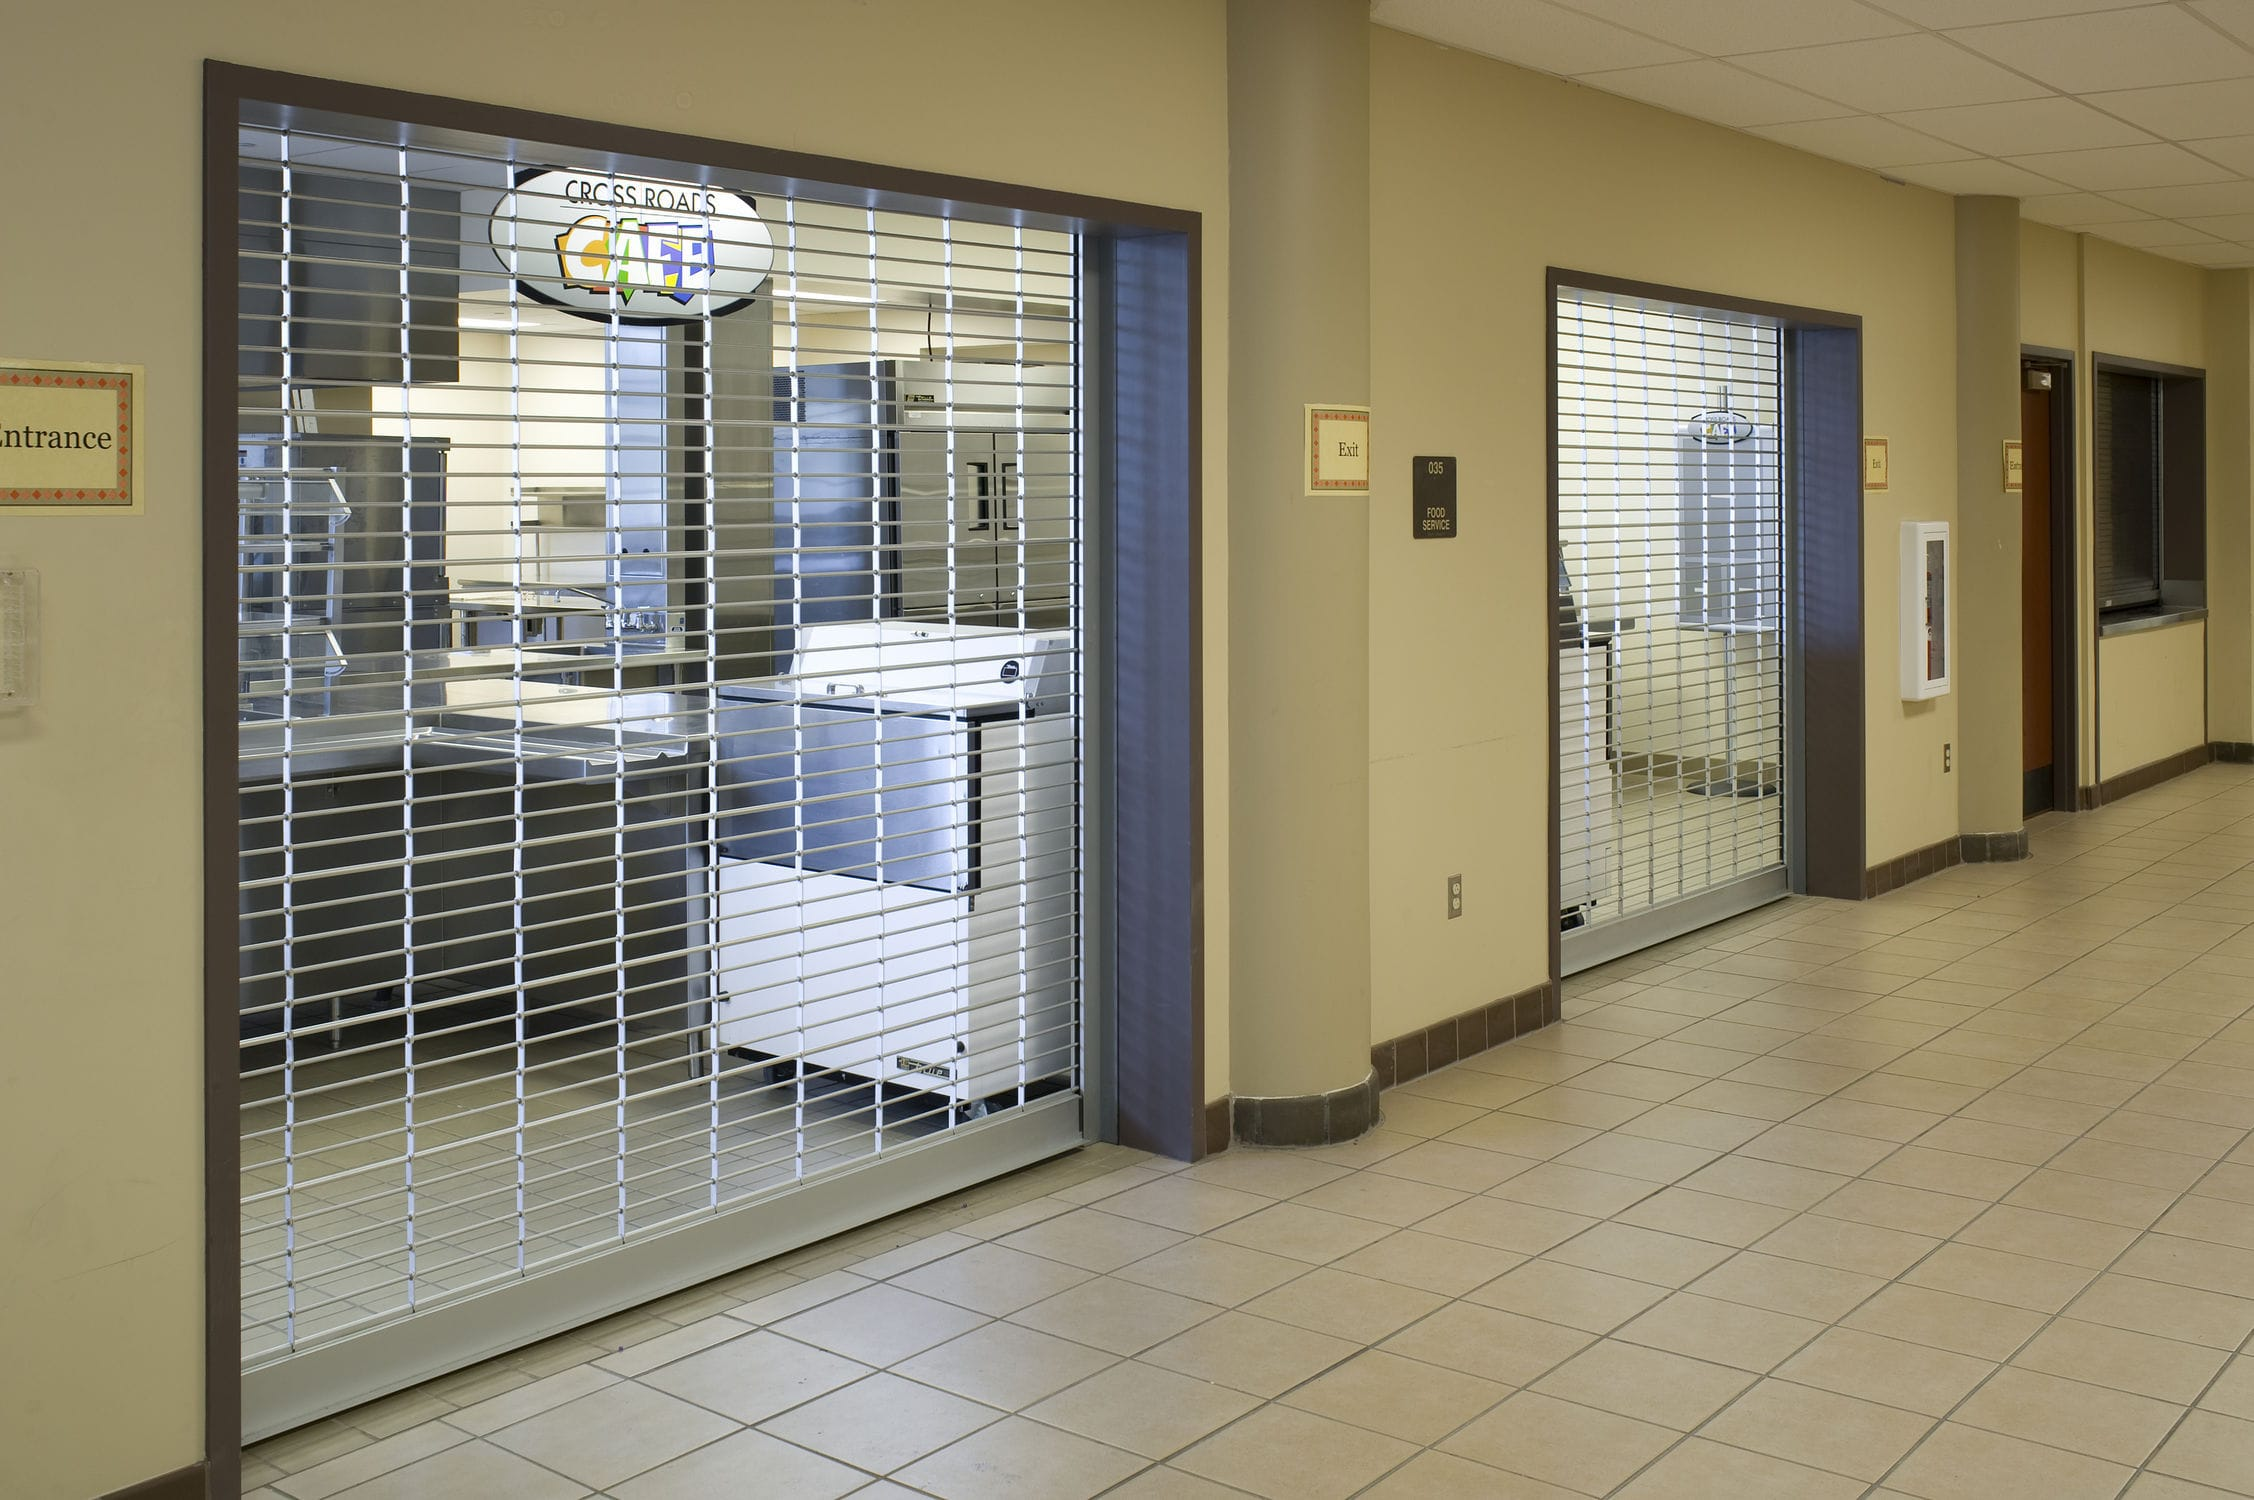 "Security Grilles - Security Grilles provide security against unwanted entry while still providing visibility and air flow. Manufactured with 5/16"" solid aluminum rods with various-sized chain constructed of eyeletted aluminum is spaced at customized intervals. They coil above openings typically in schools, malls, healthcare settings and more."